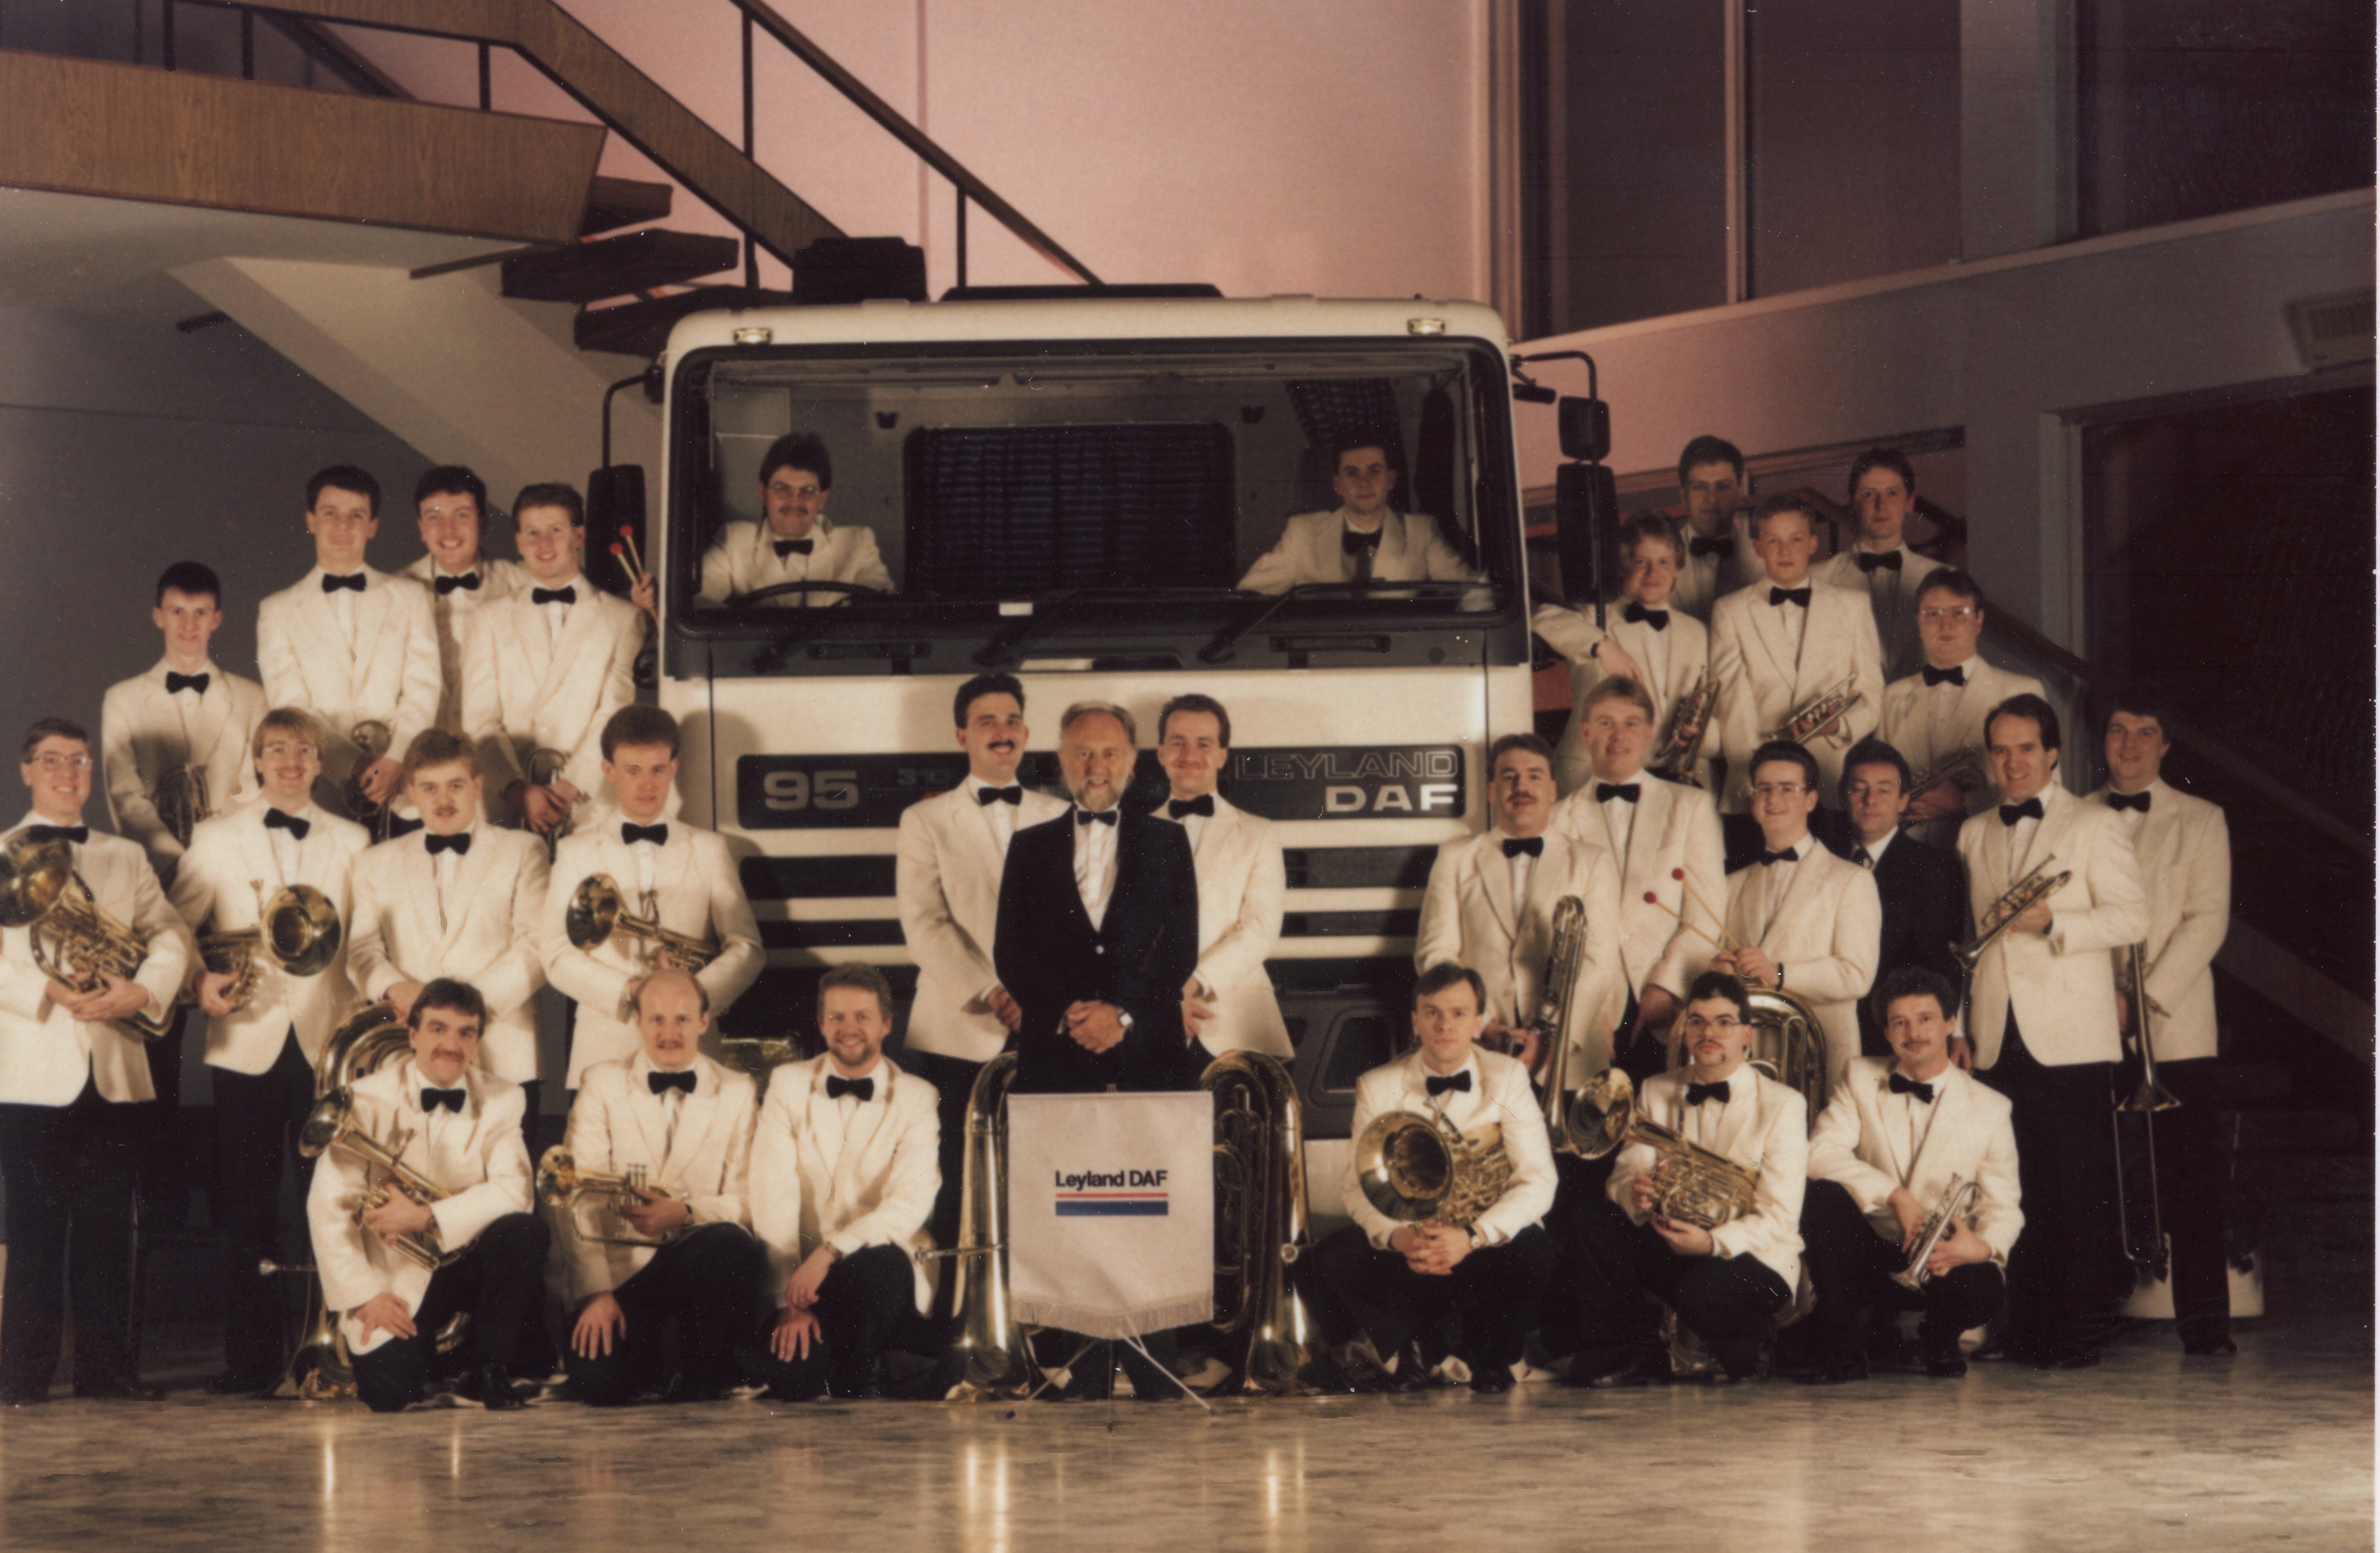 Leyland DAF Band